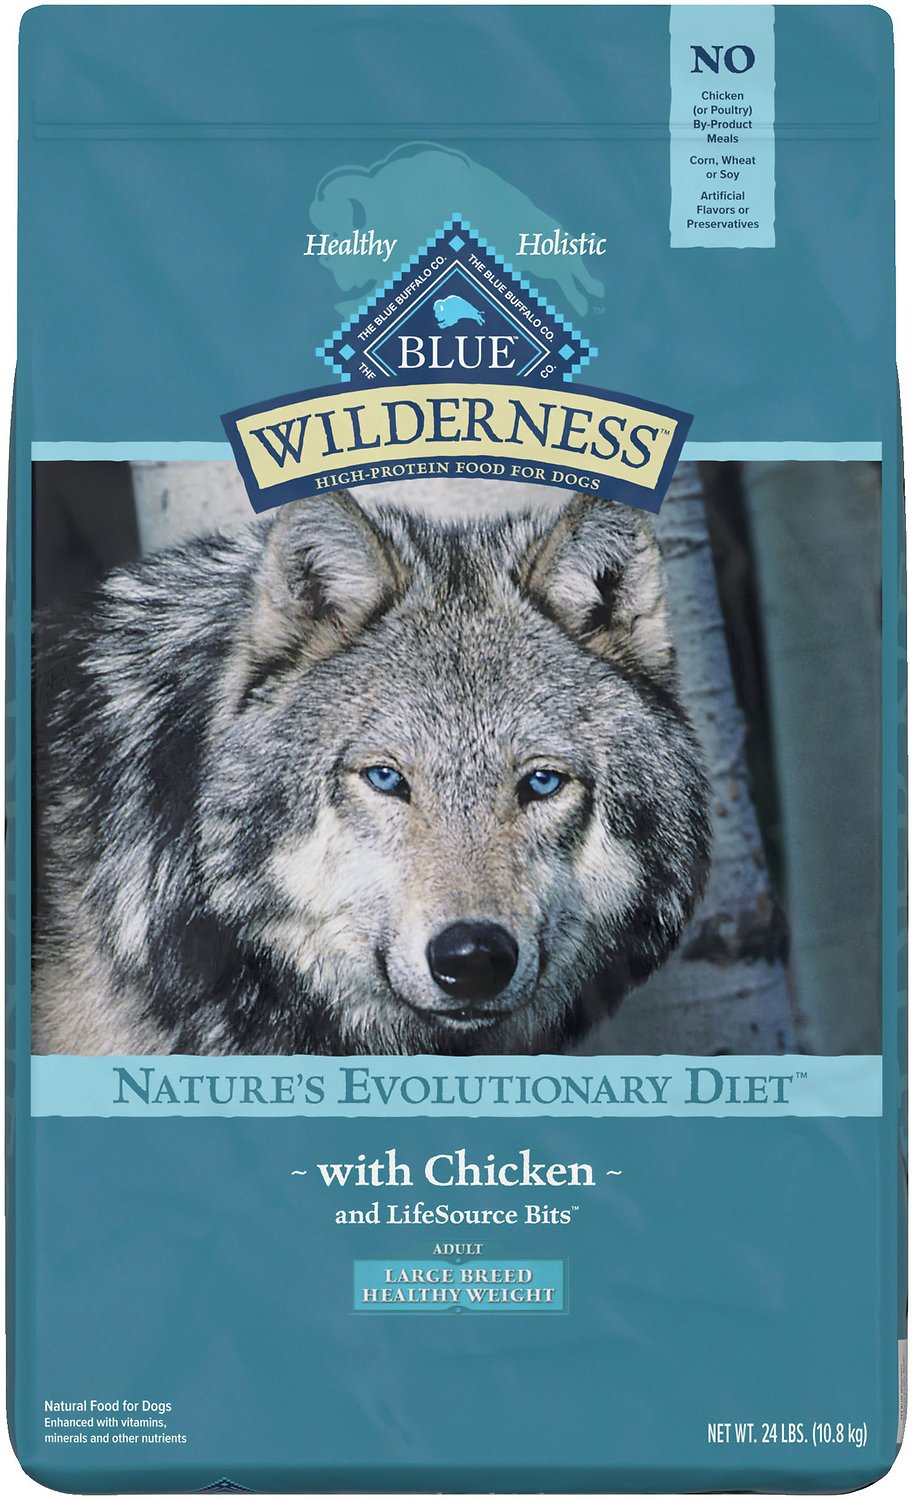 Blue Buffalo Wilderness Healthy Weight Chicken Recipe Adult Large Breed  Grain-Free Dry Dog Food, 24-lb bag